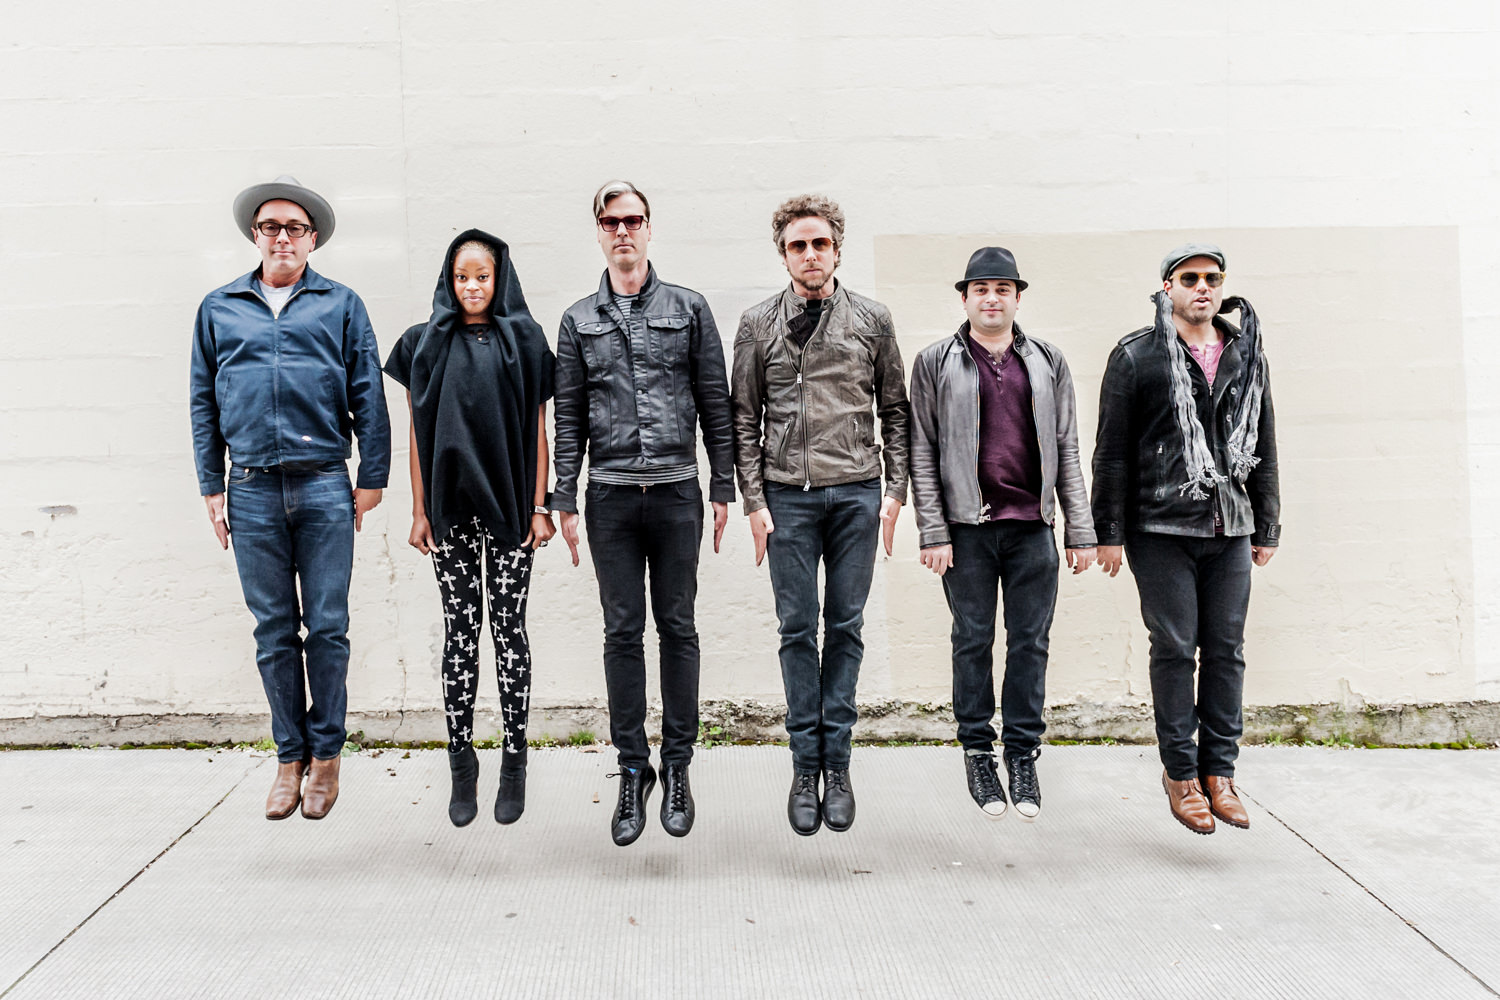 fitz and the tantrums band jumping at kexp